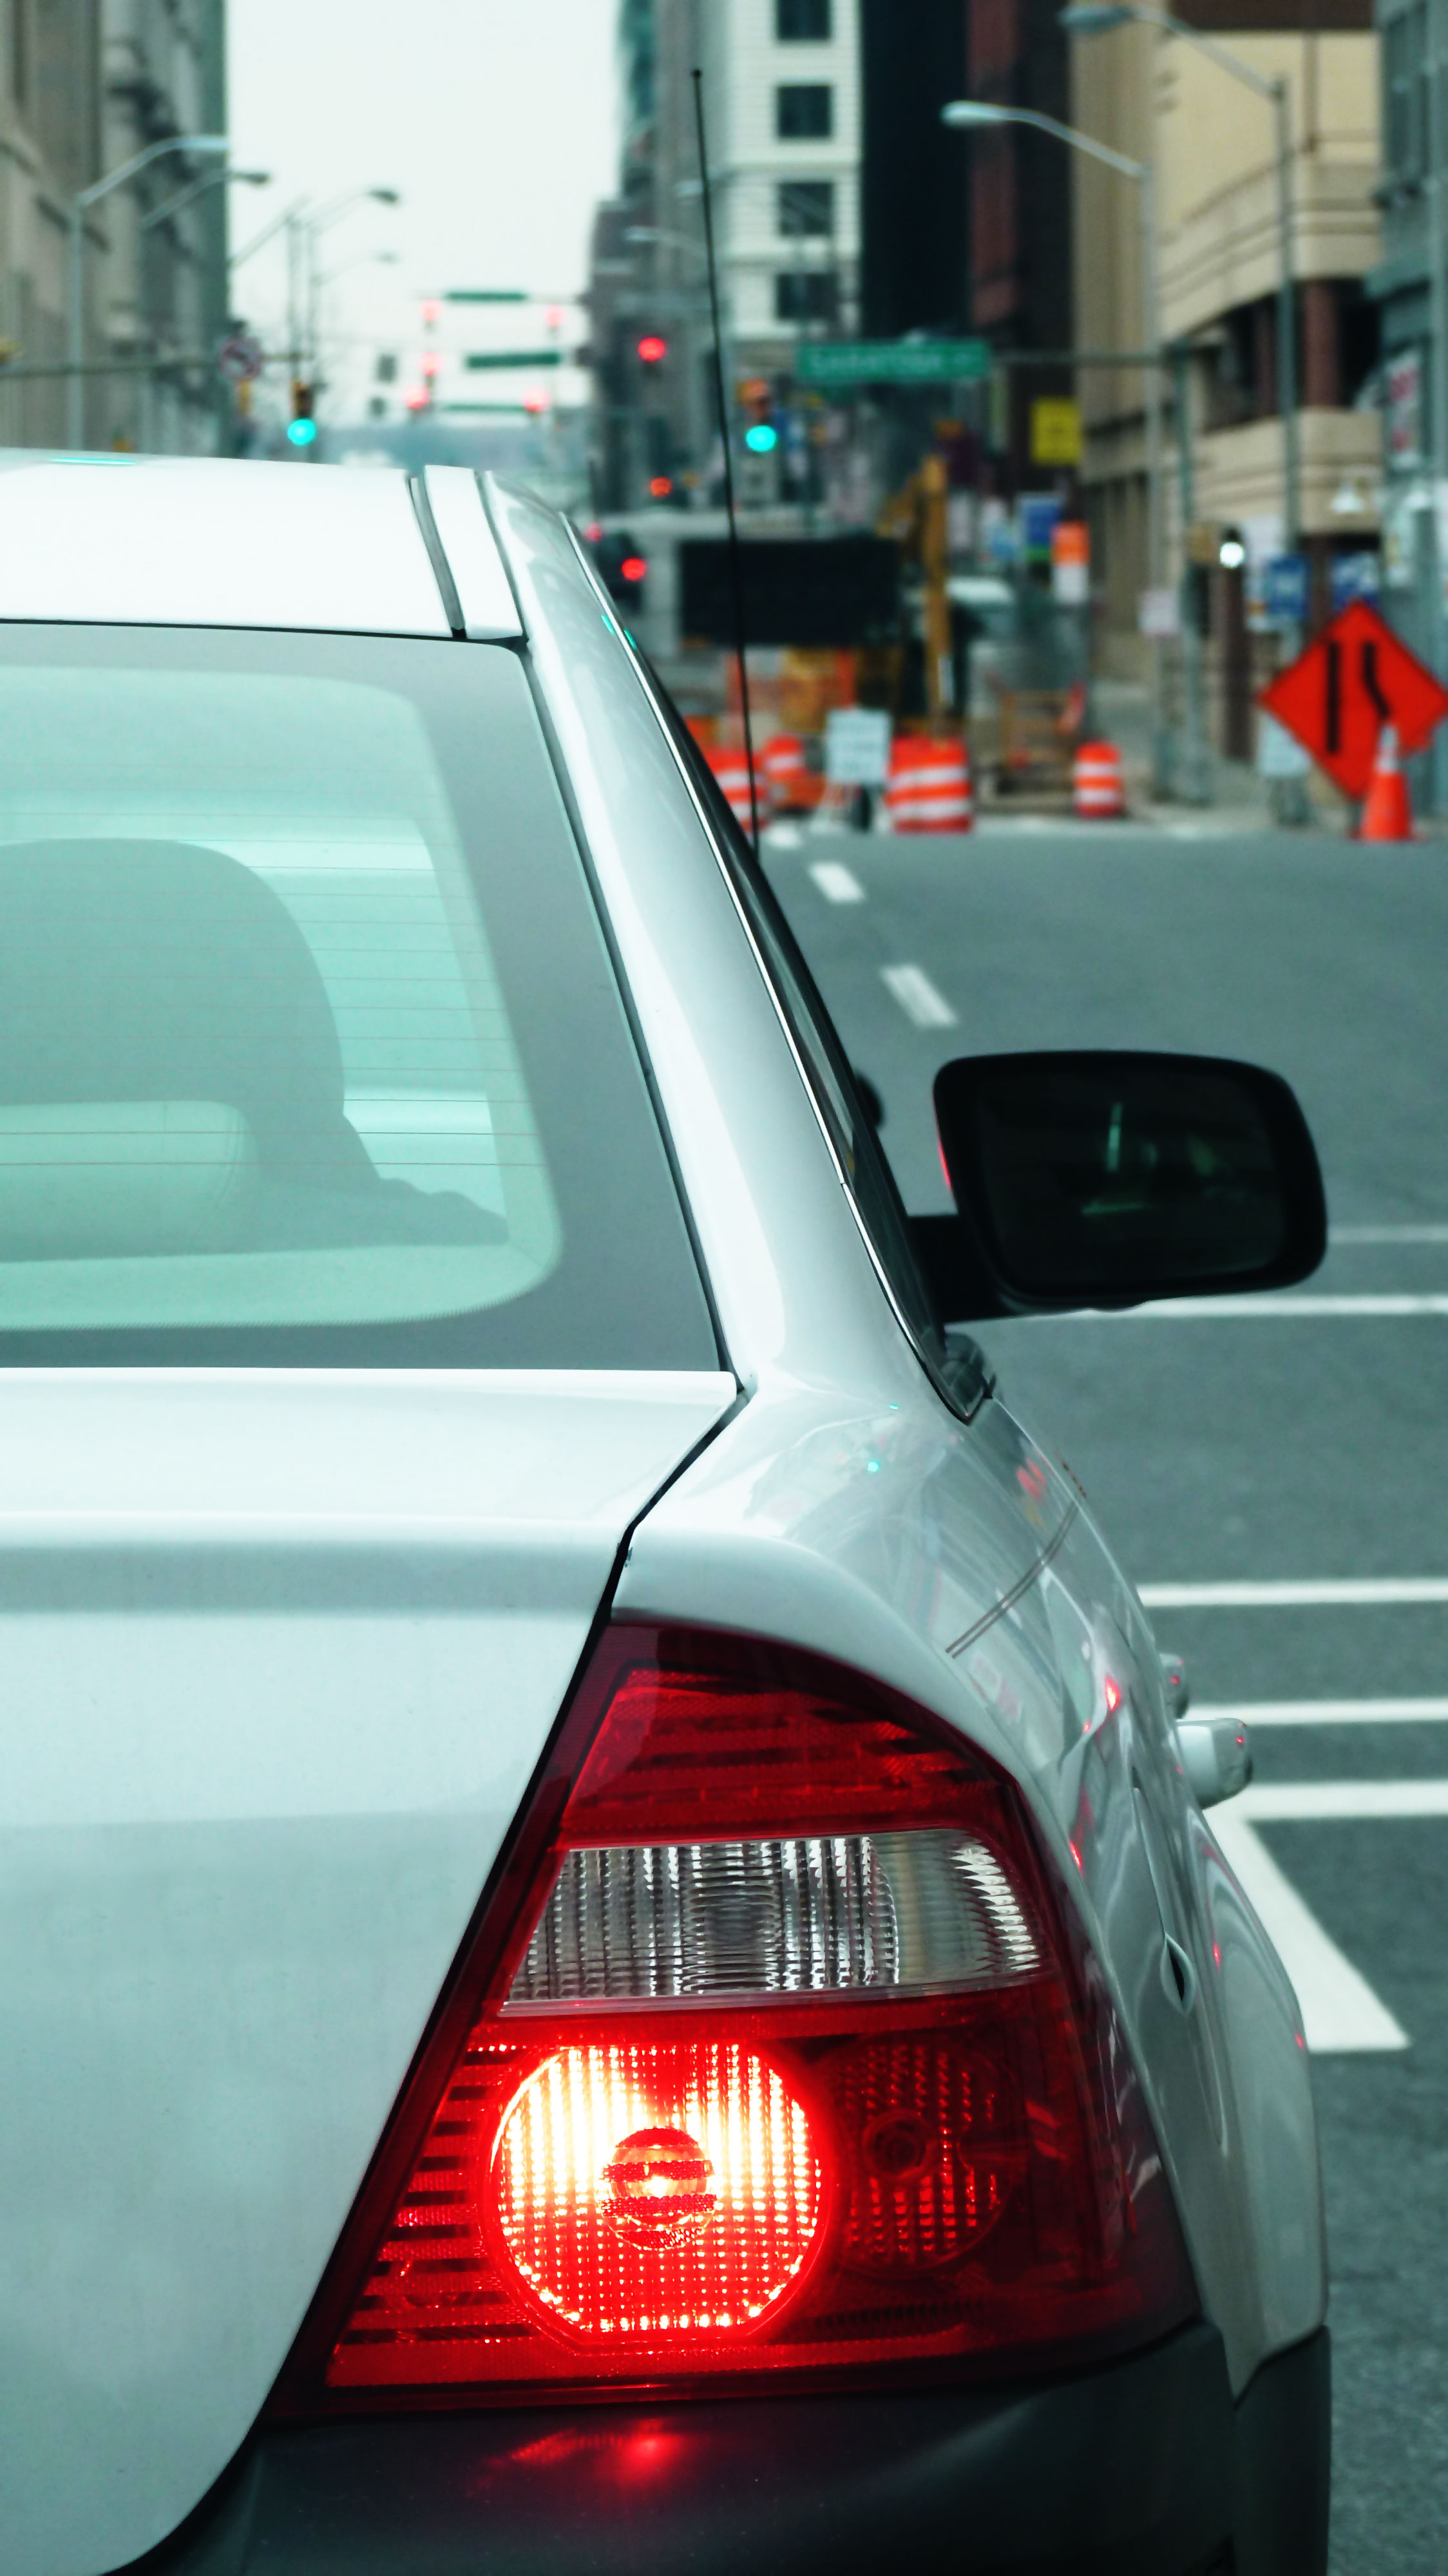 New motor insurance policy for drivers aged over 65